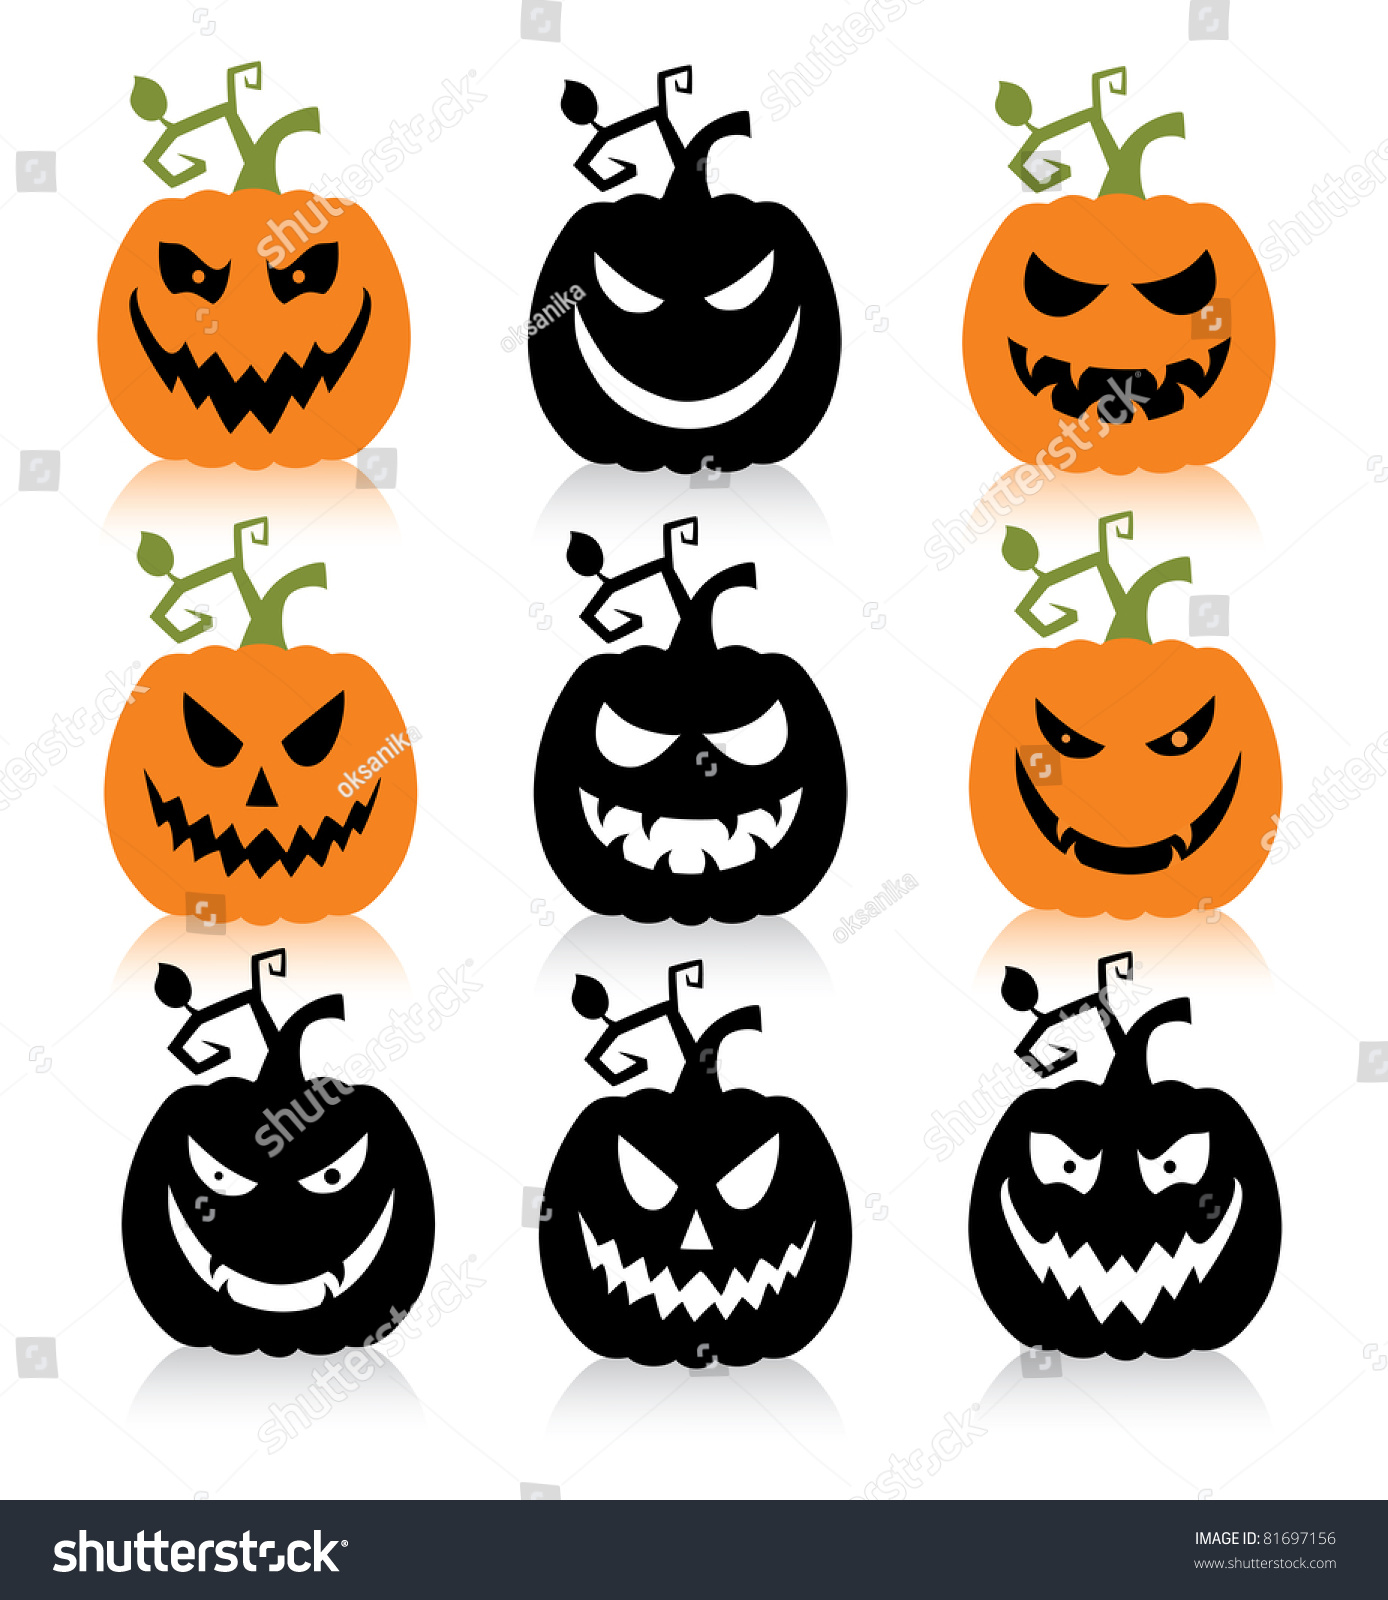 Scary Pumpkin Painting Set Of A Scary Halloween Pumpkin Stock Vector Illustration